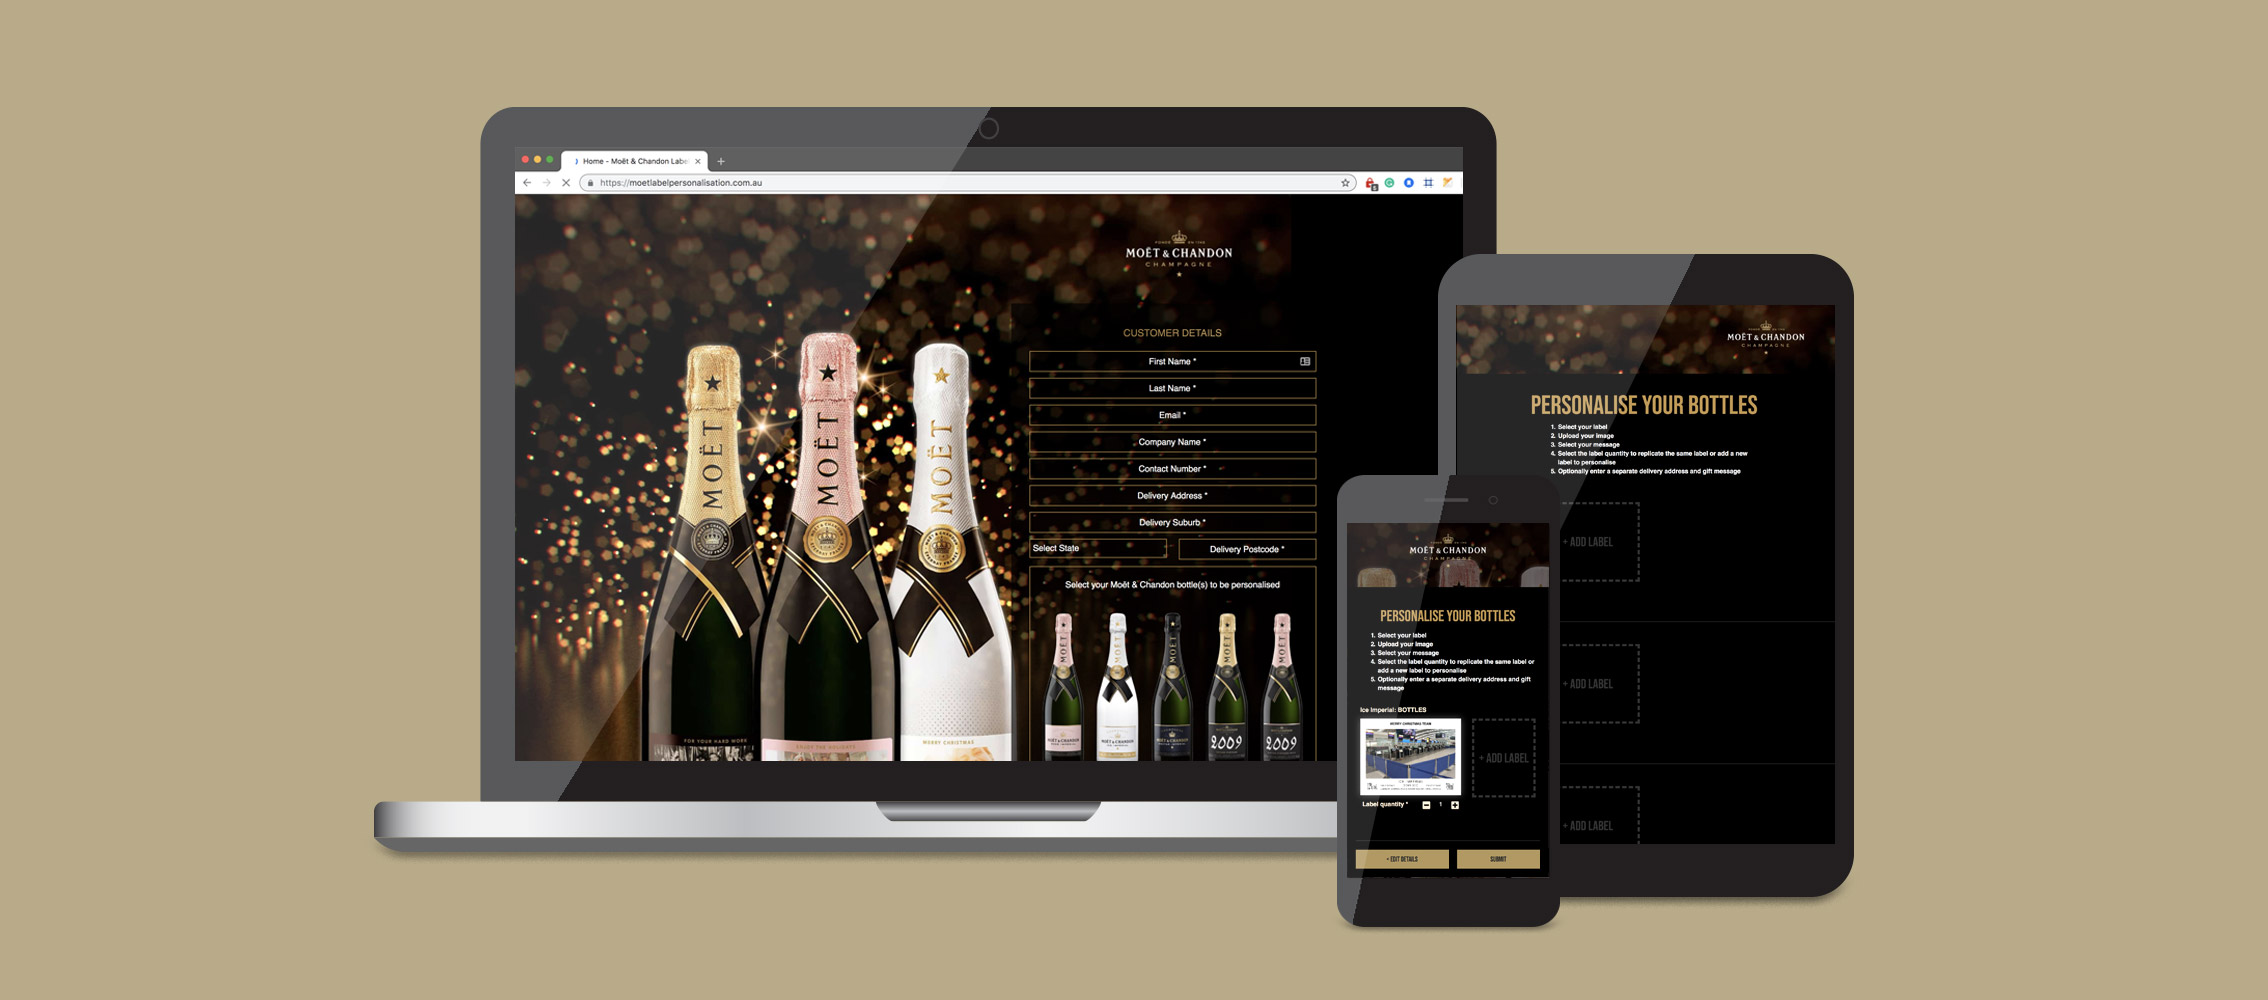 Moët Chandon Home Label Personalisation Micro site Design